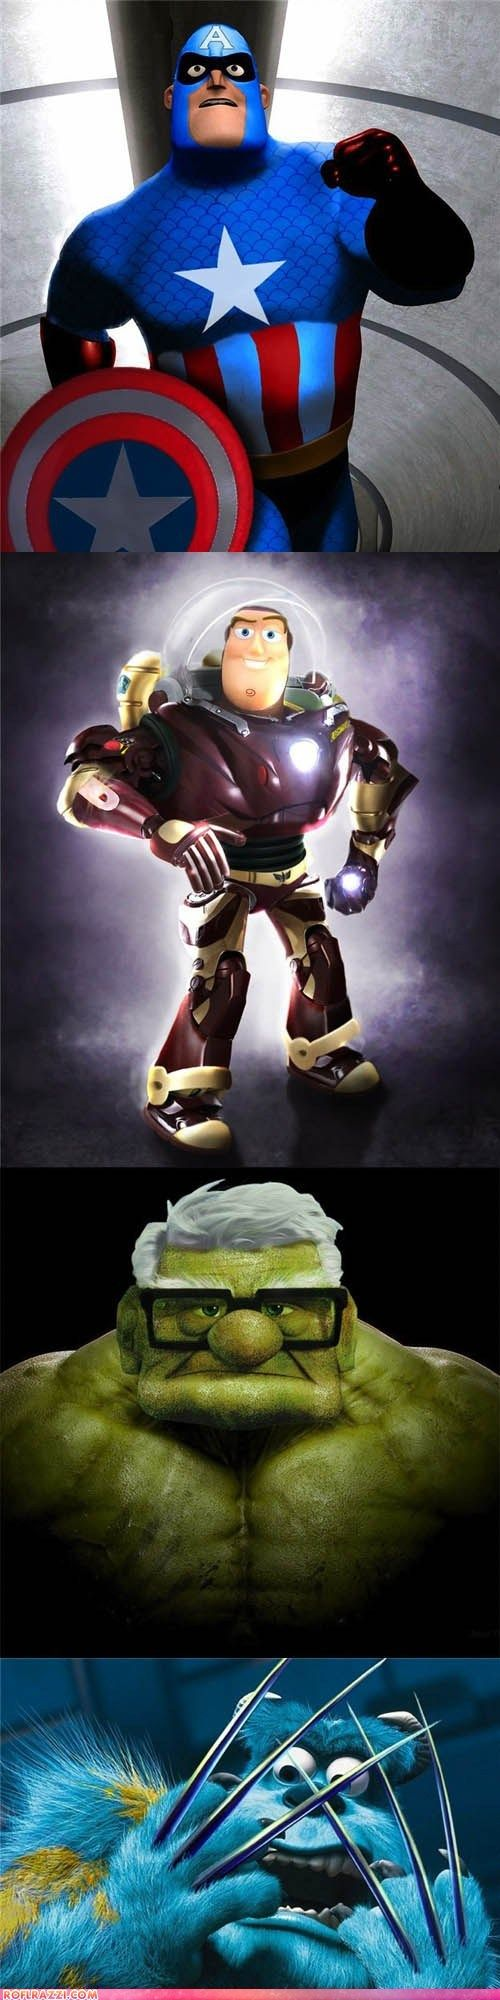 Pixar/Marvel hybrids. I can't even express in words how awesome this is.